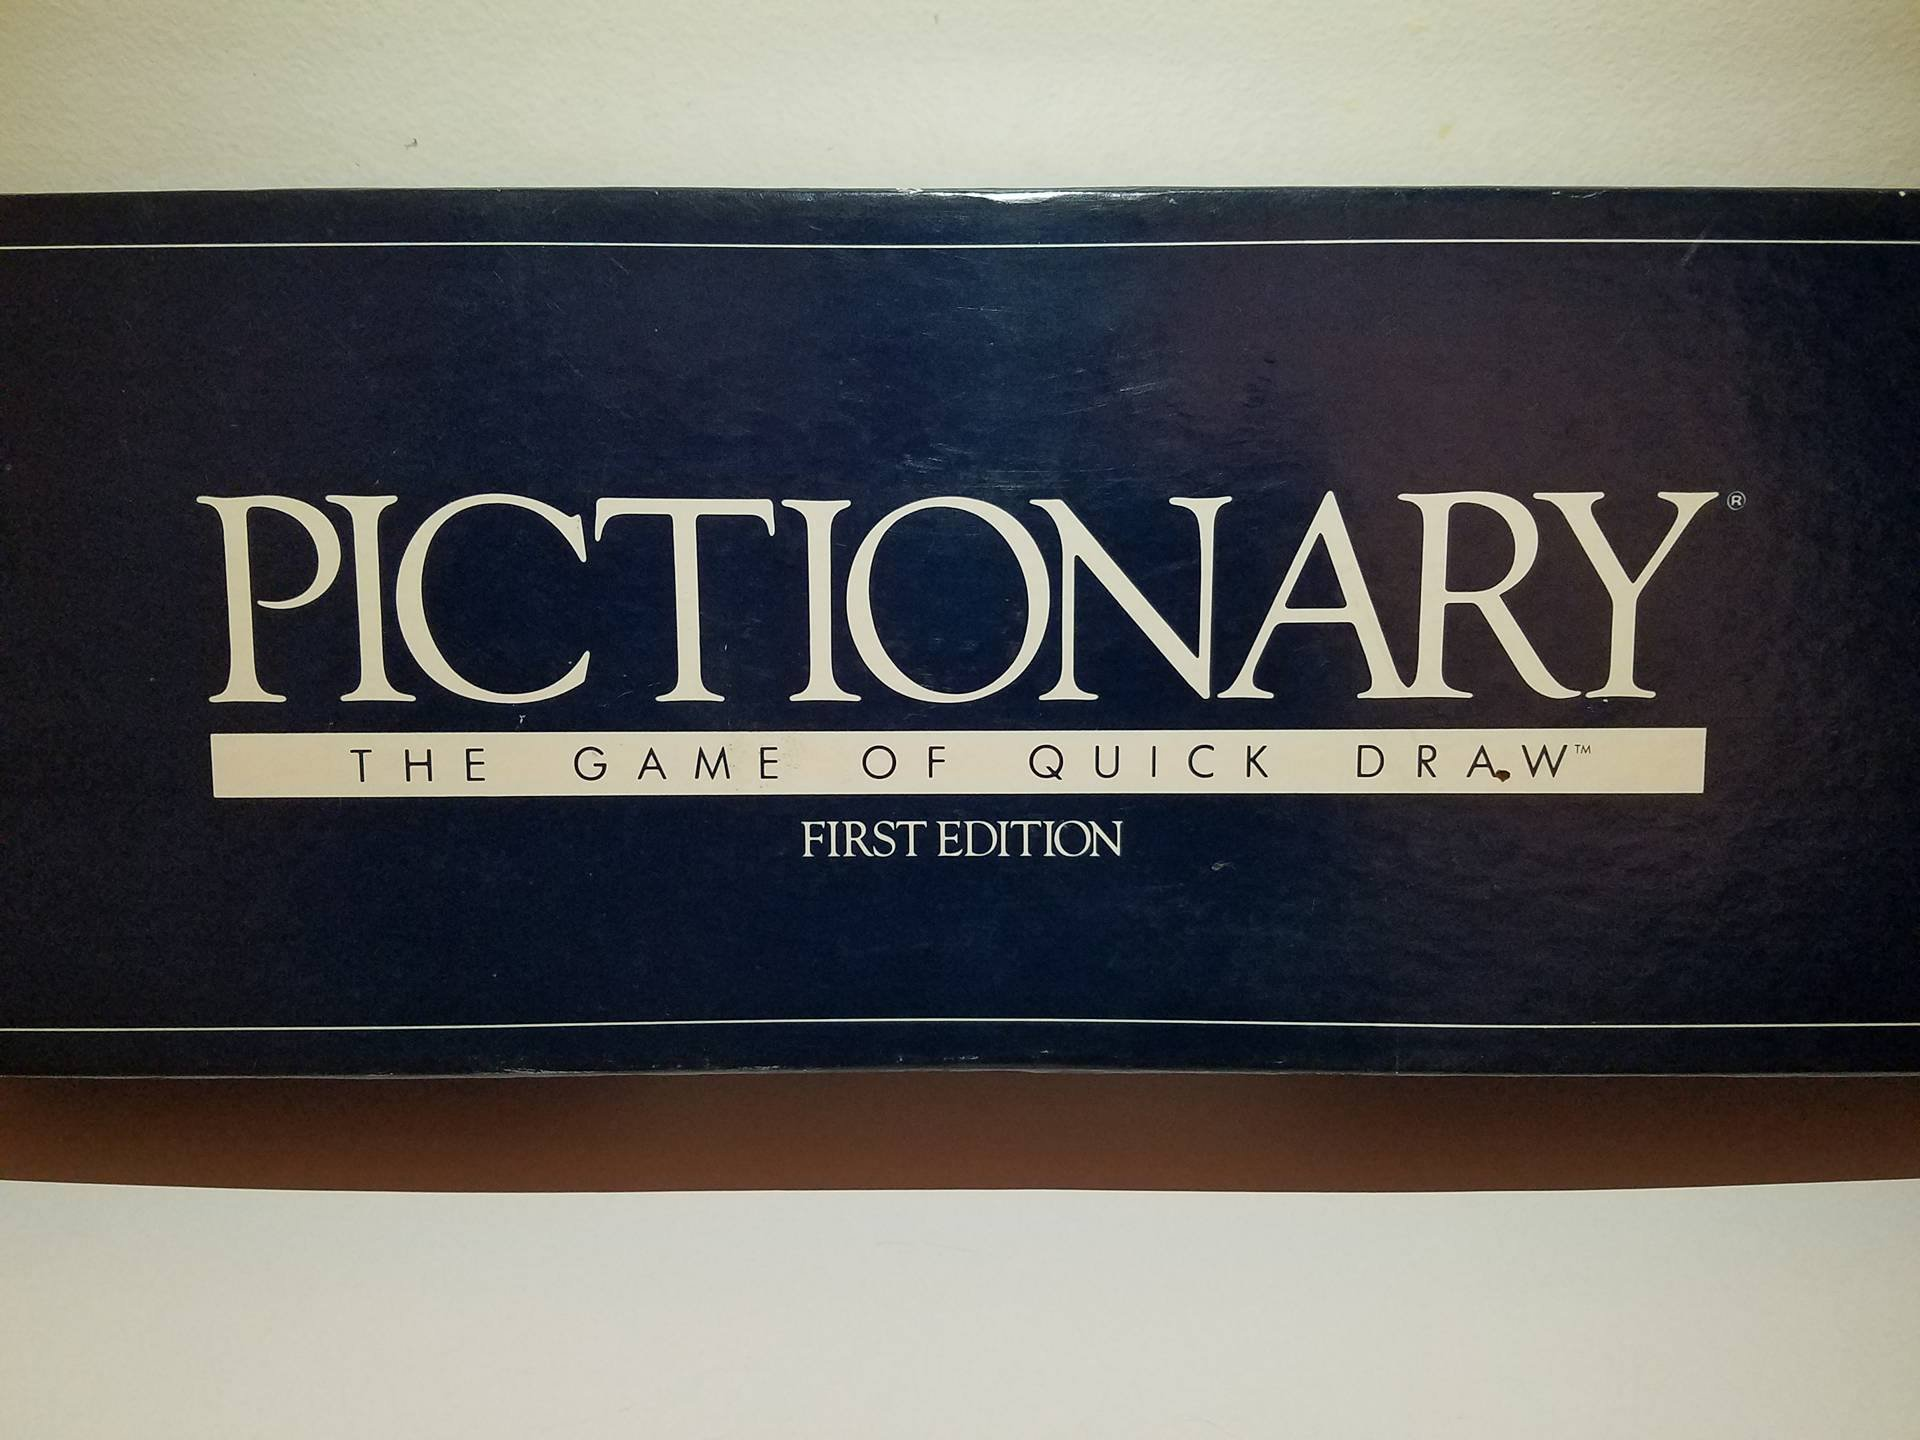 Pictionary - First Edition